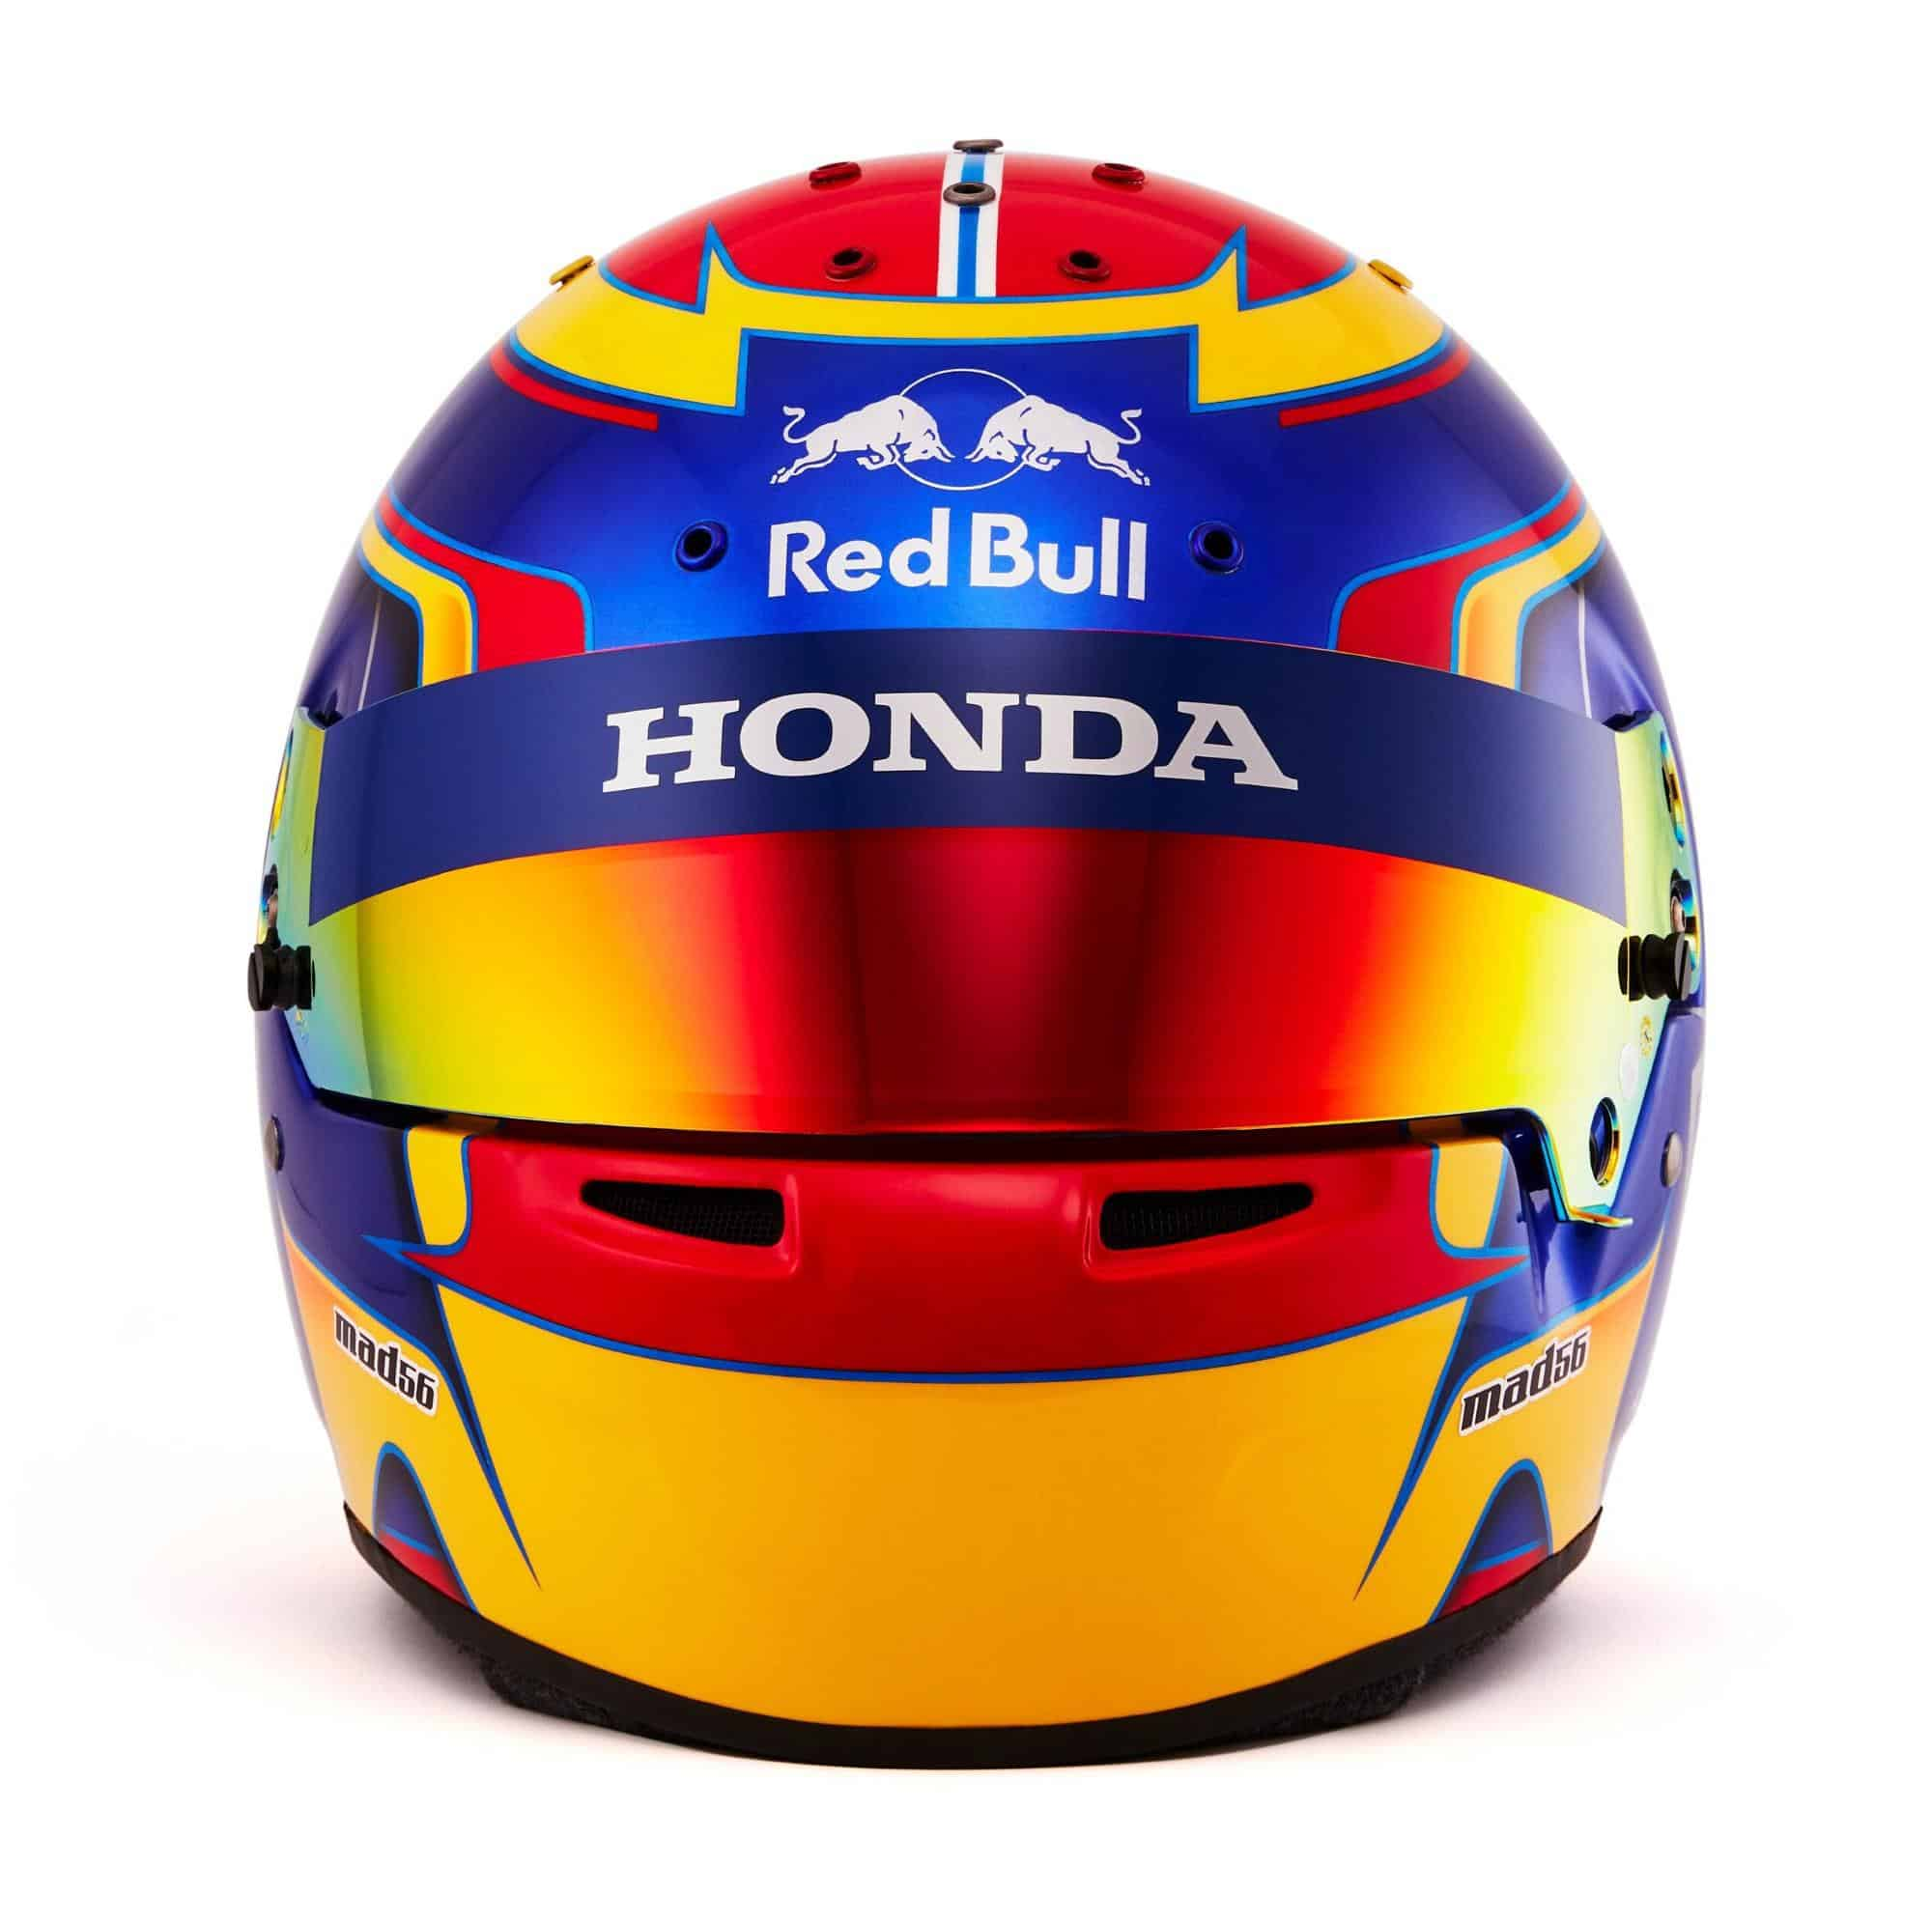 2019 F1 Alexander Albon helmet Toro Rosso Honda front Photo Red Bull Edited by MAXF1net